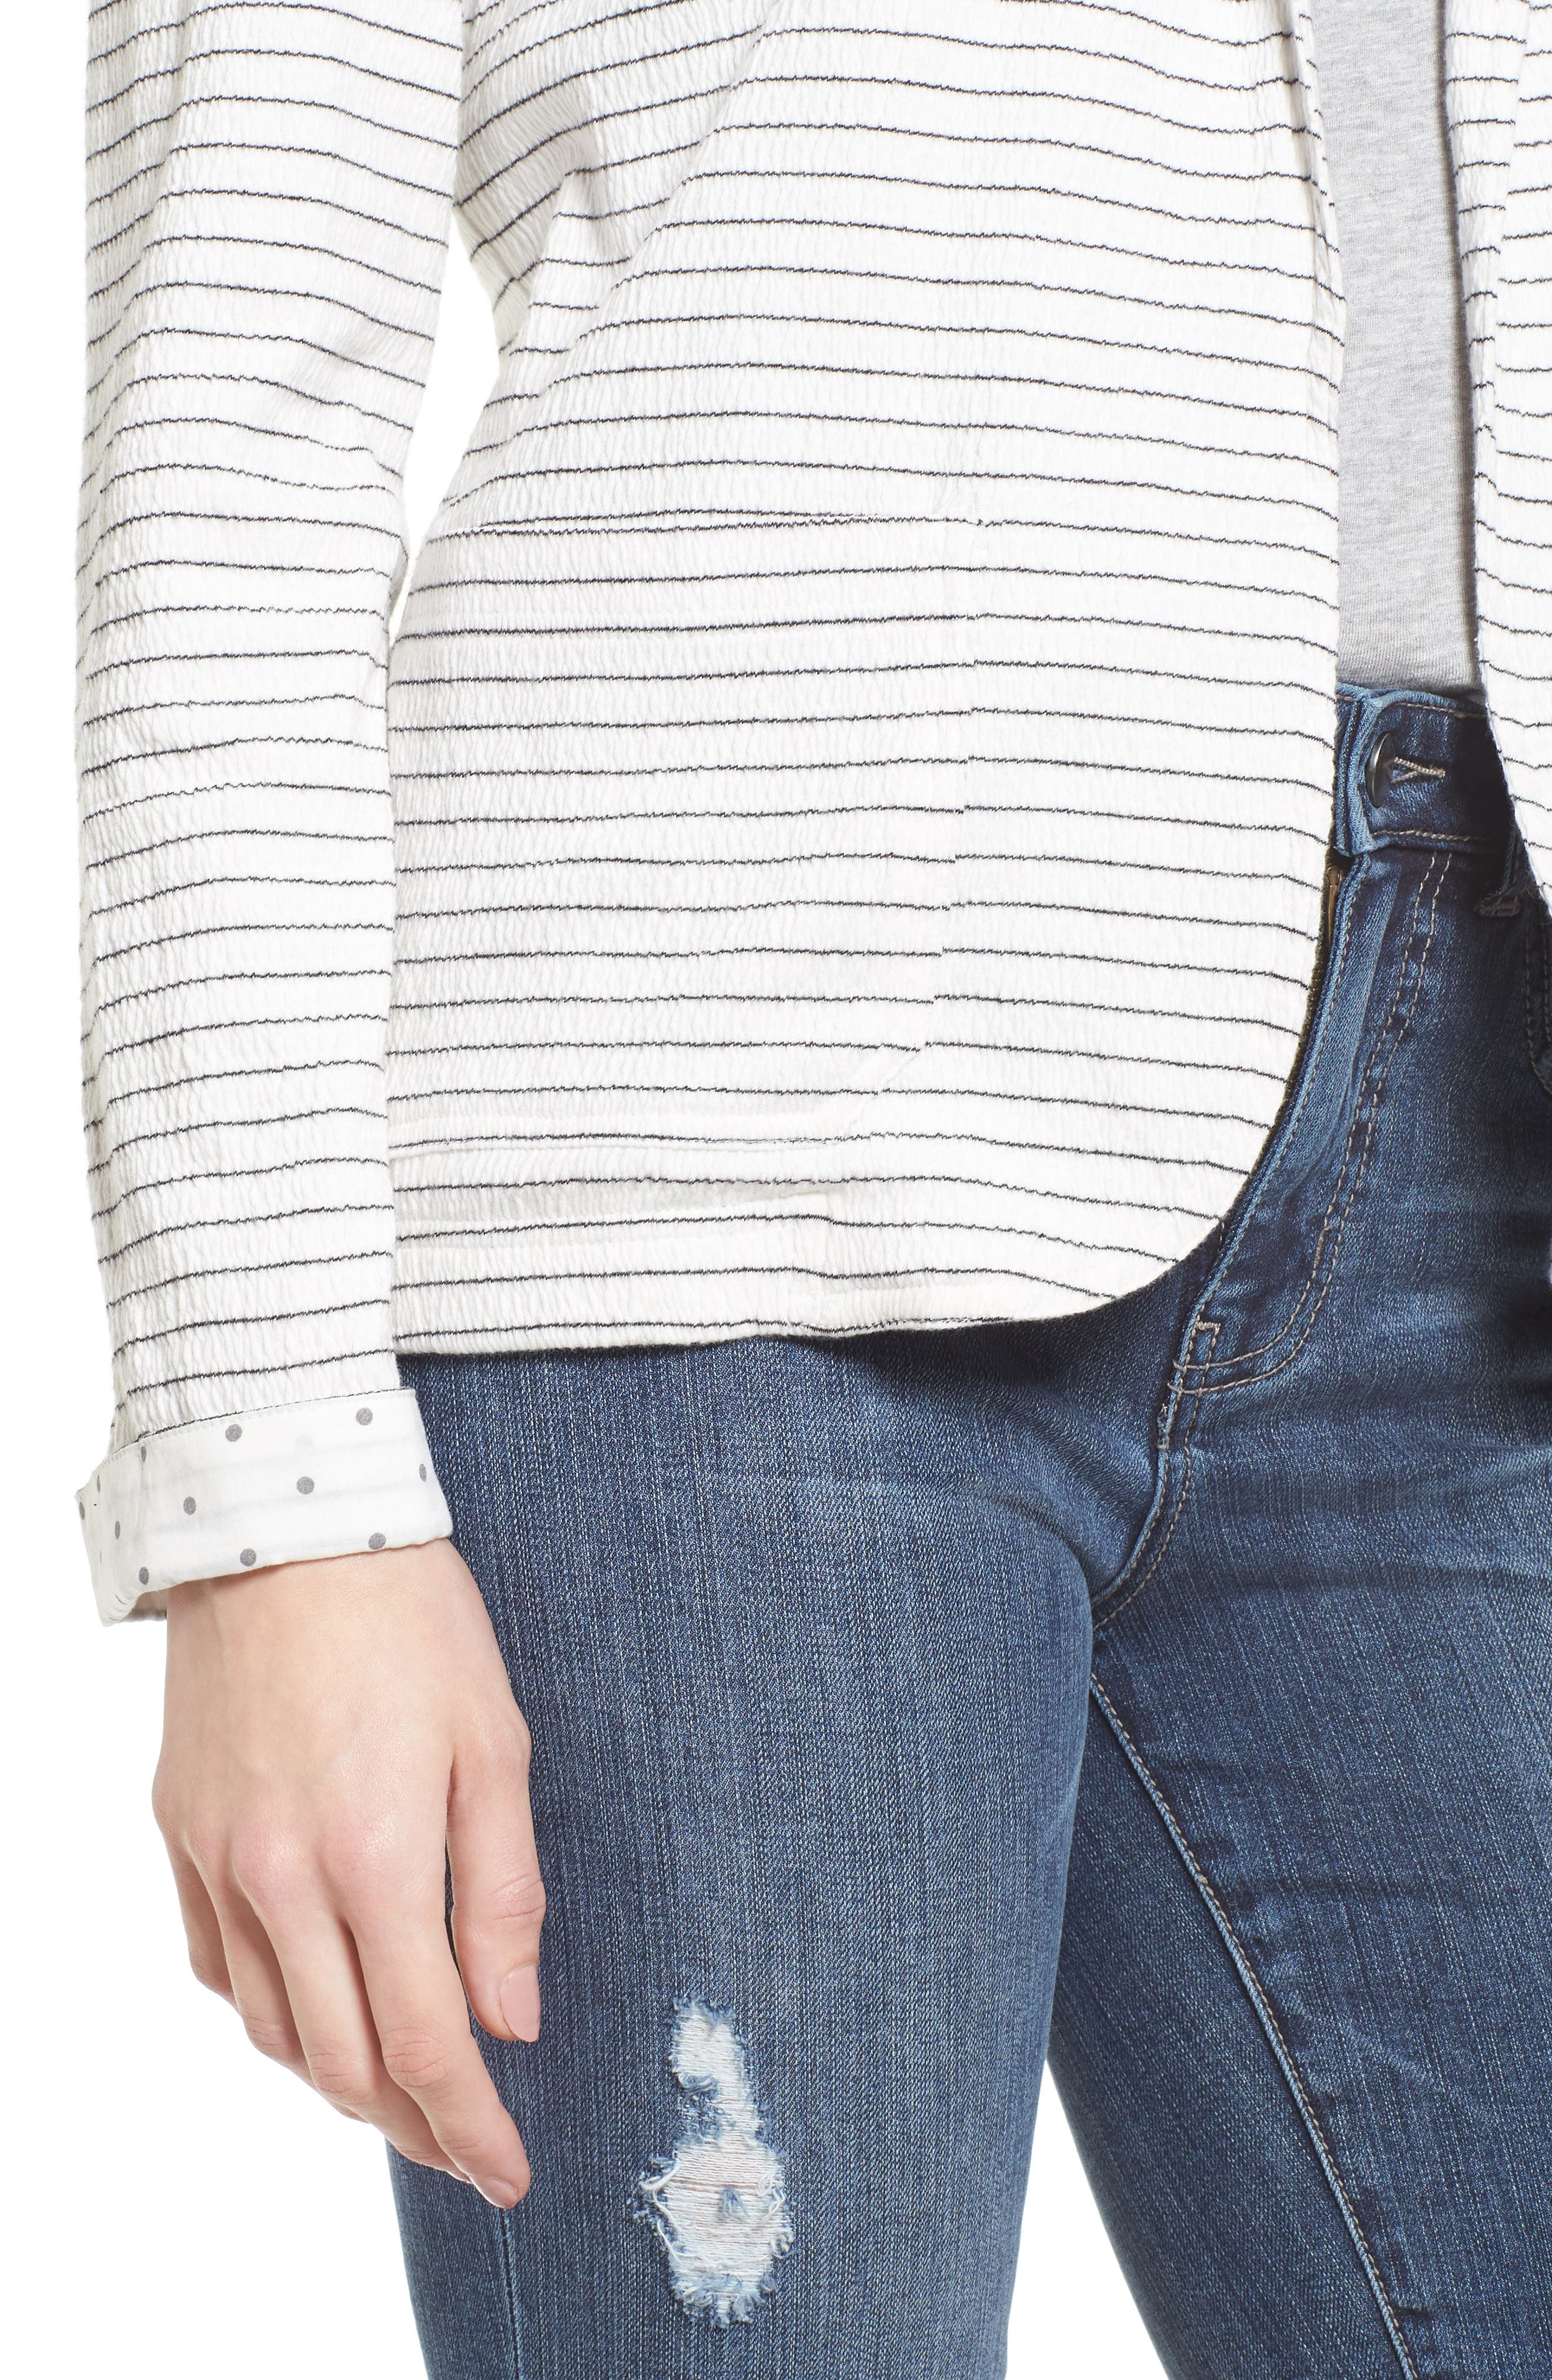 Crinkle Stretch Cotton Lined Blazer,                             Alternate thumbnail 4, color,                             900